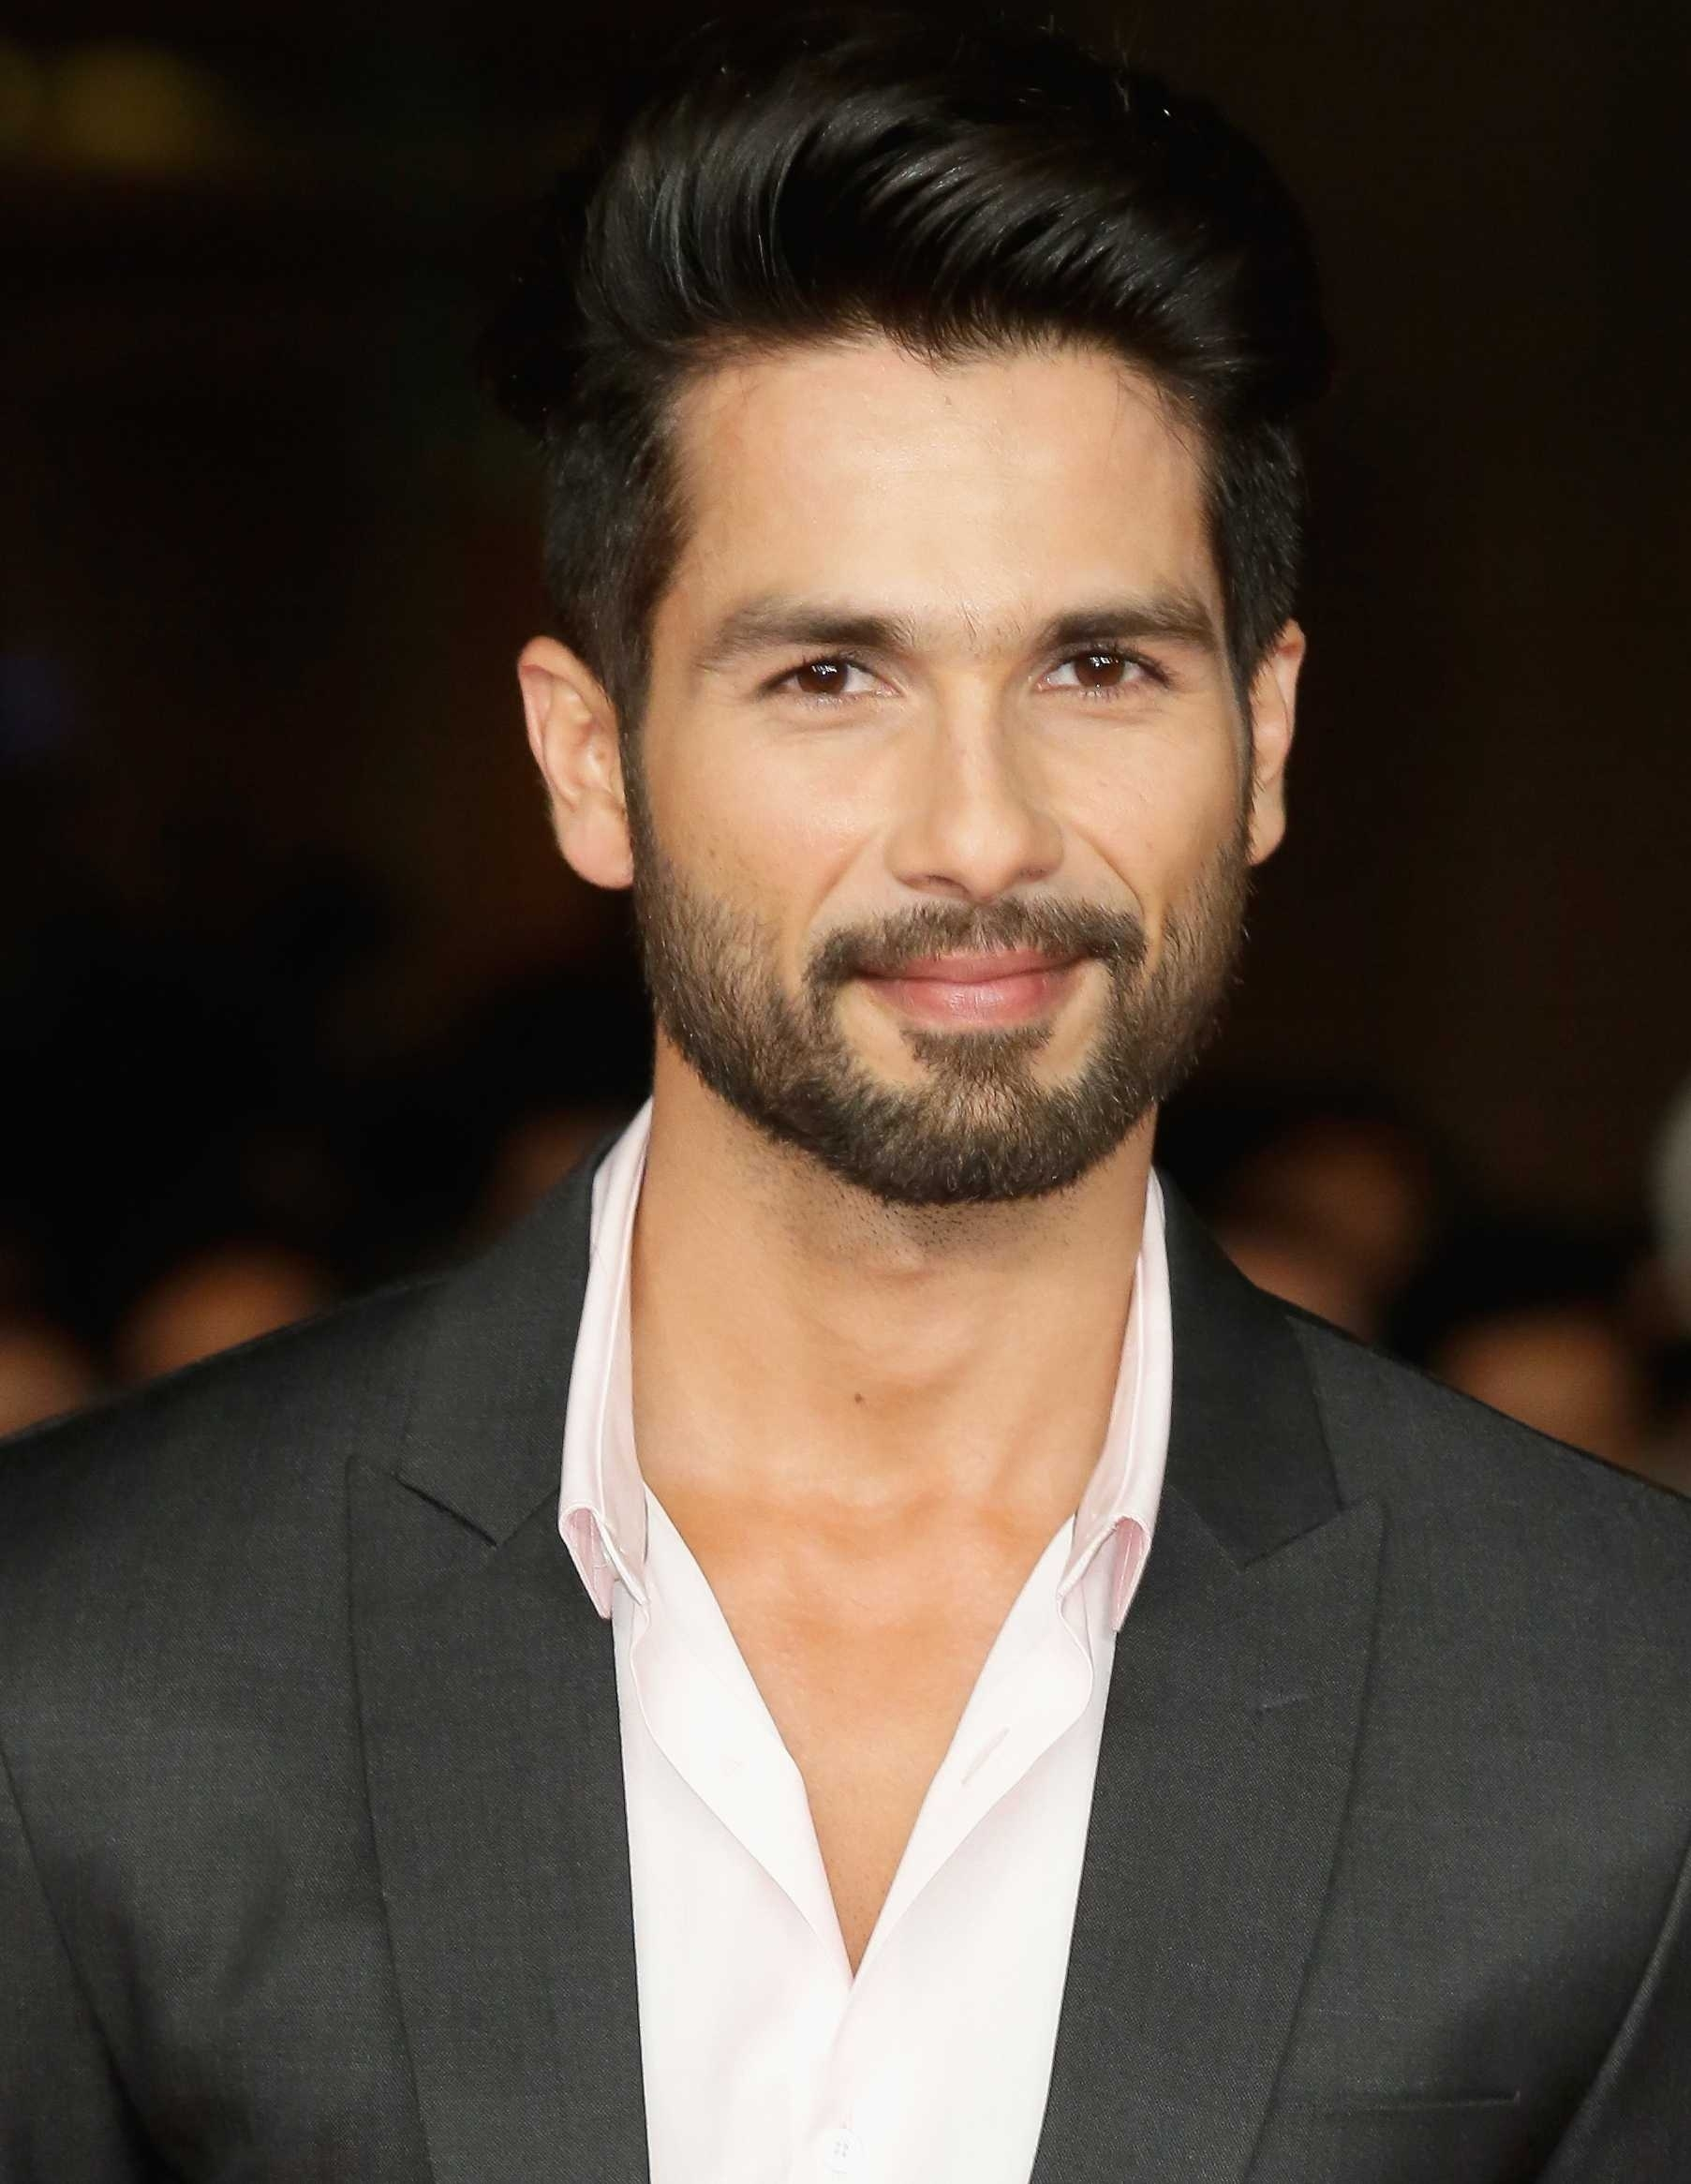 Haircut Styles For Men - How To Choose The Best Hairstyle For Your throughout Hairstyle For Square Face Indian Man